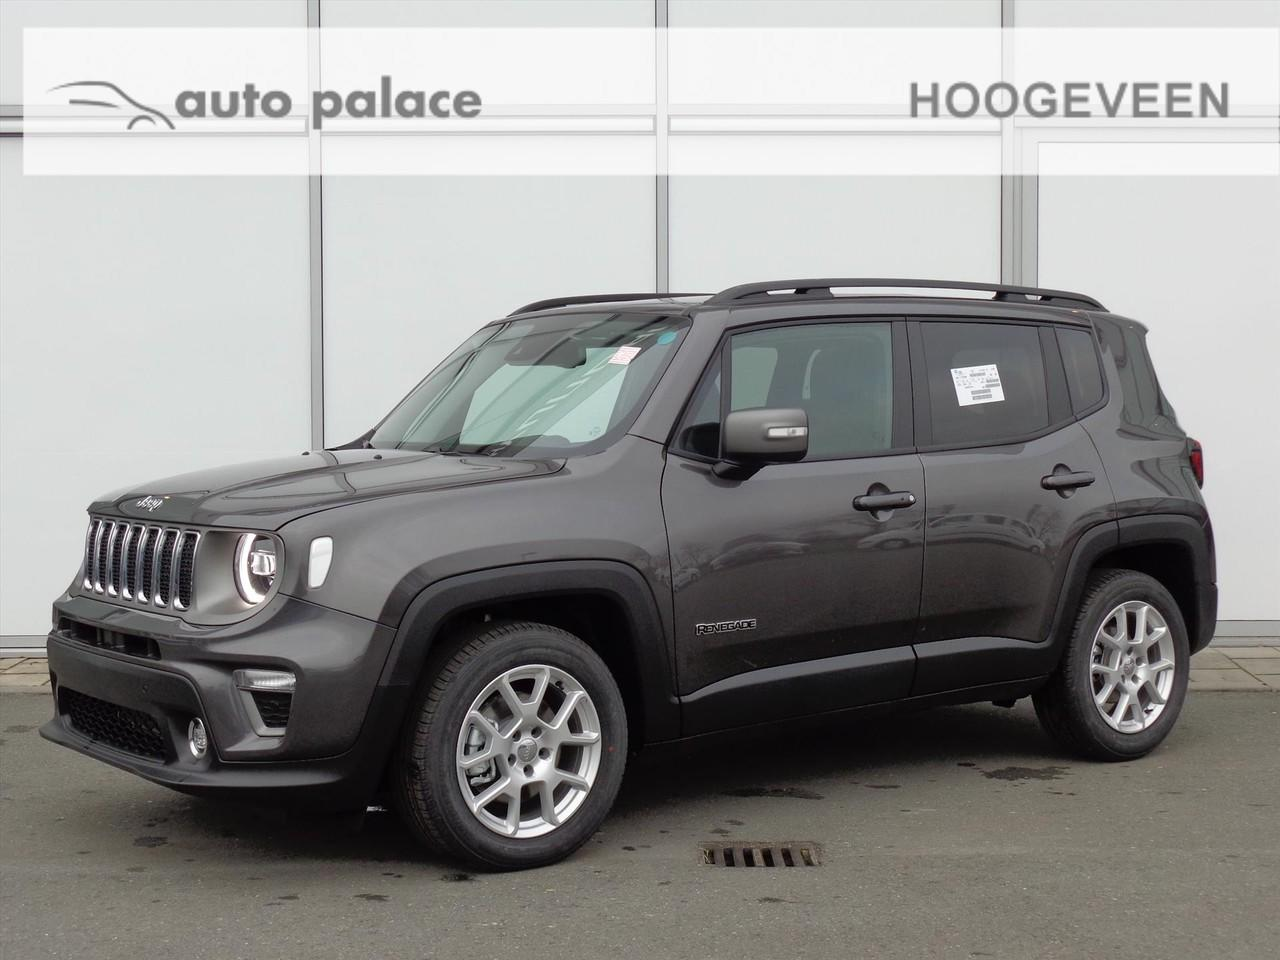 Jeep Renegade 1.3turbo 150pk automaat freedom